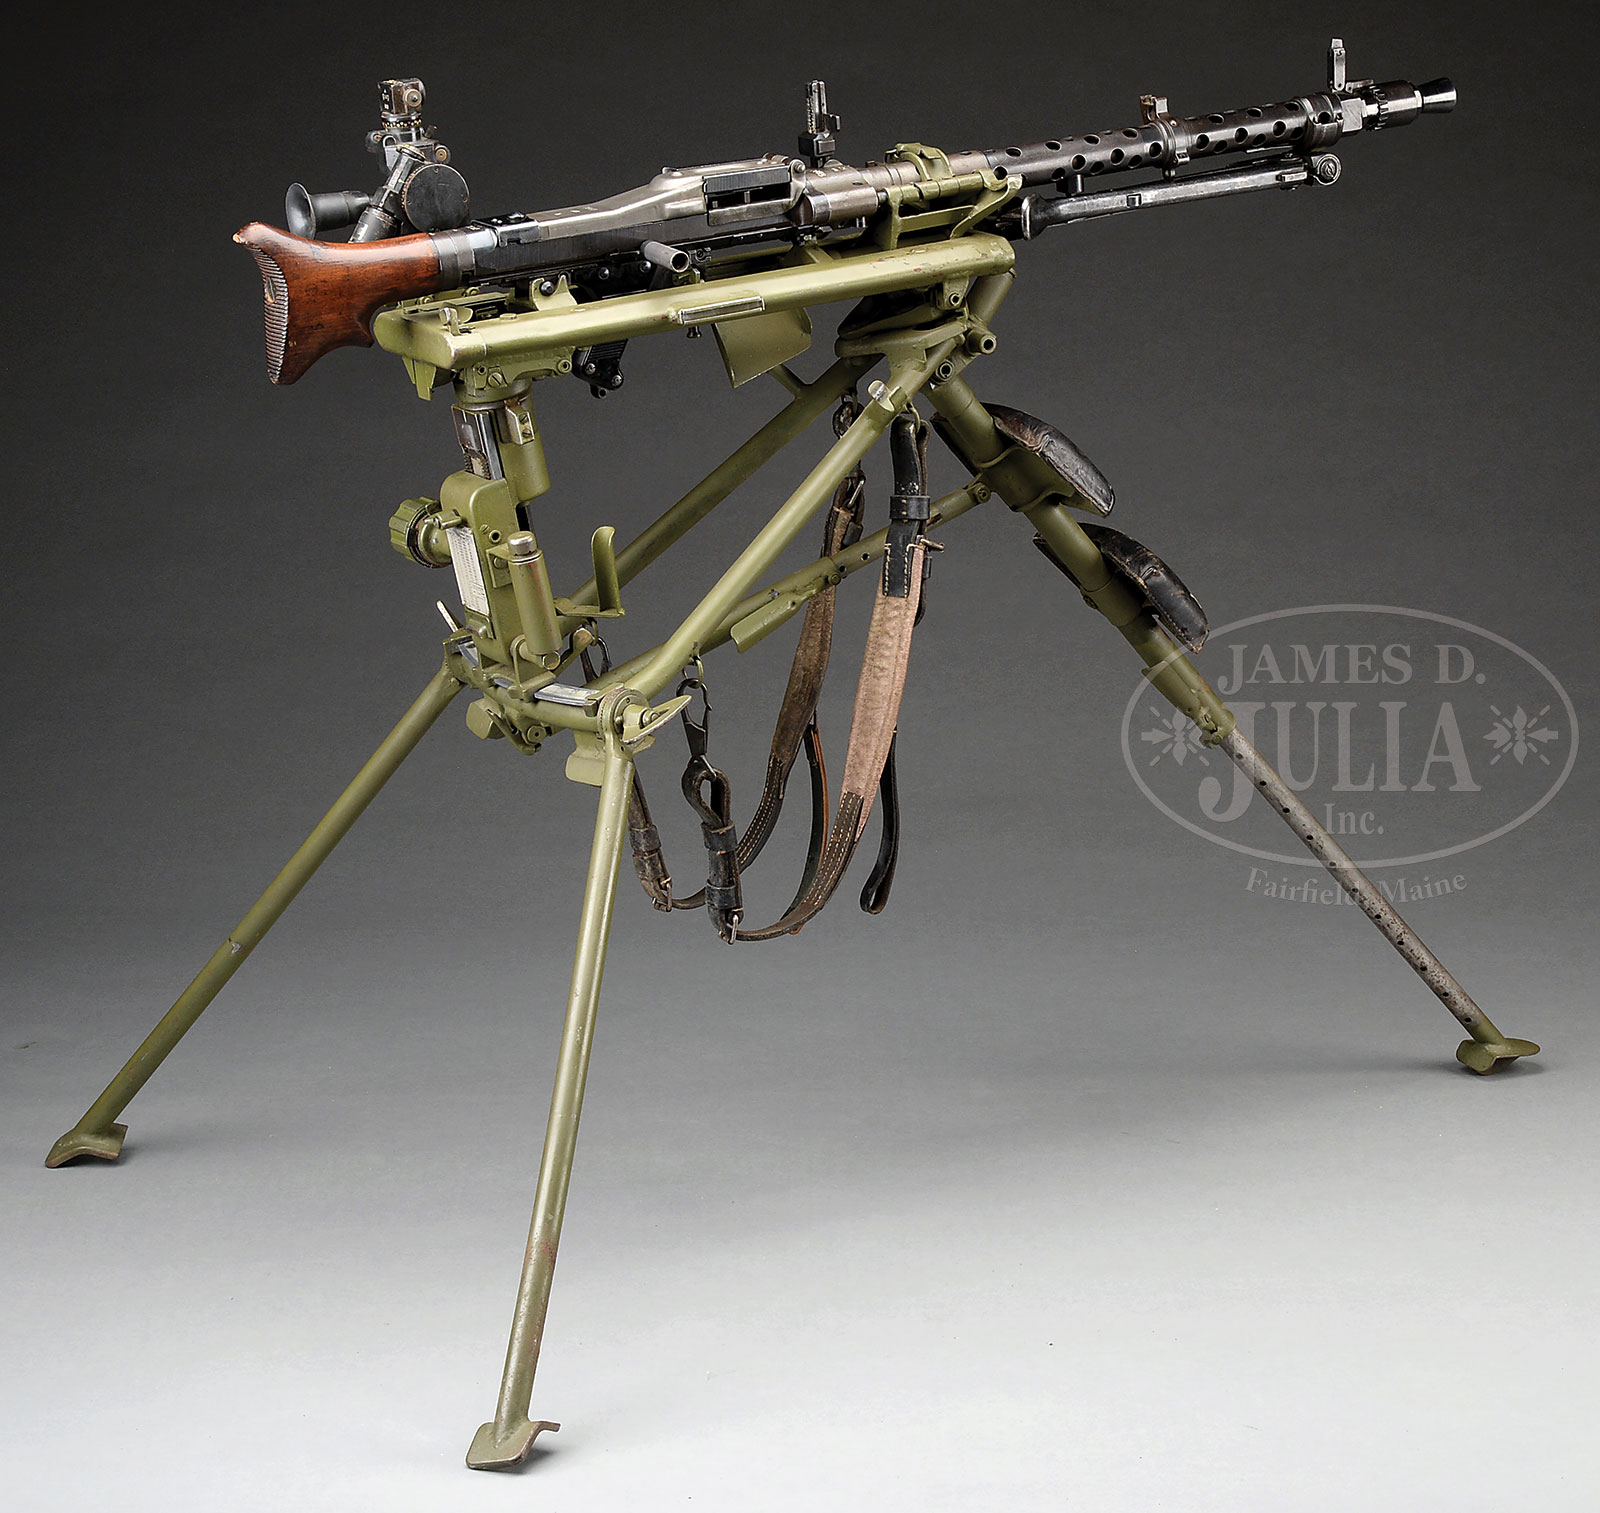 EXCEPTIONALLY FINE LATE WAR GERMAN WWII MG-34 MACHINE GUN, W